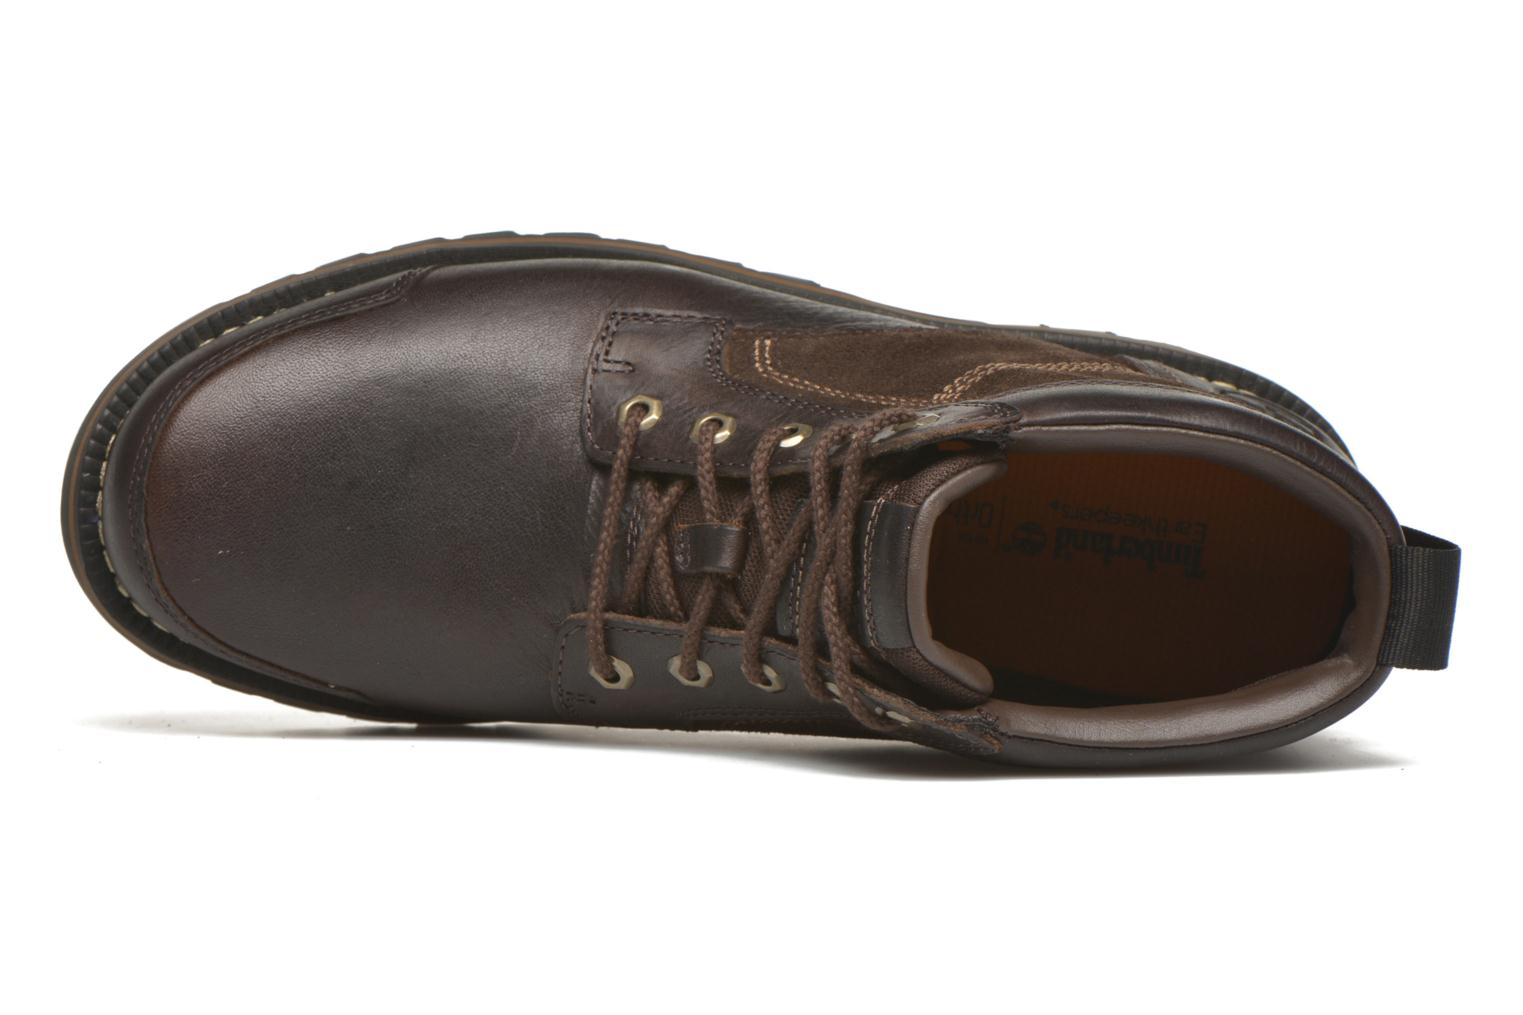 Larchmont Chukka Dark Brown FG and Suede